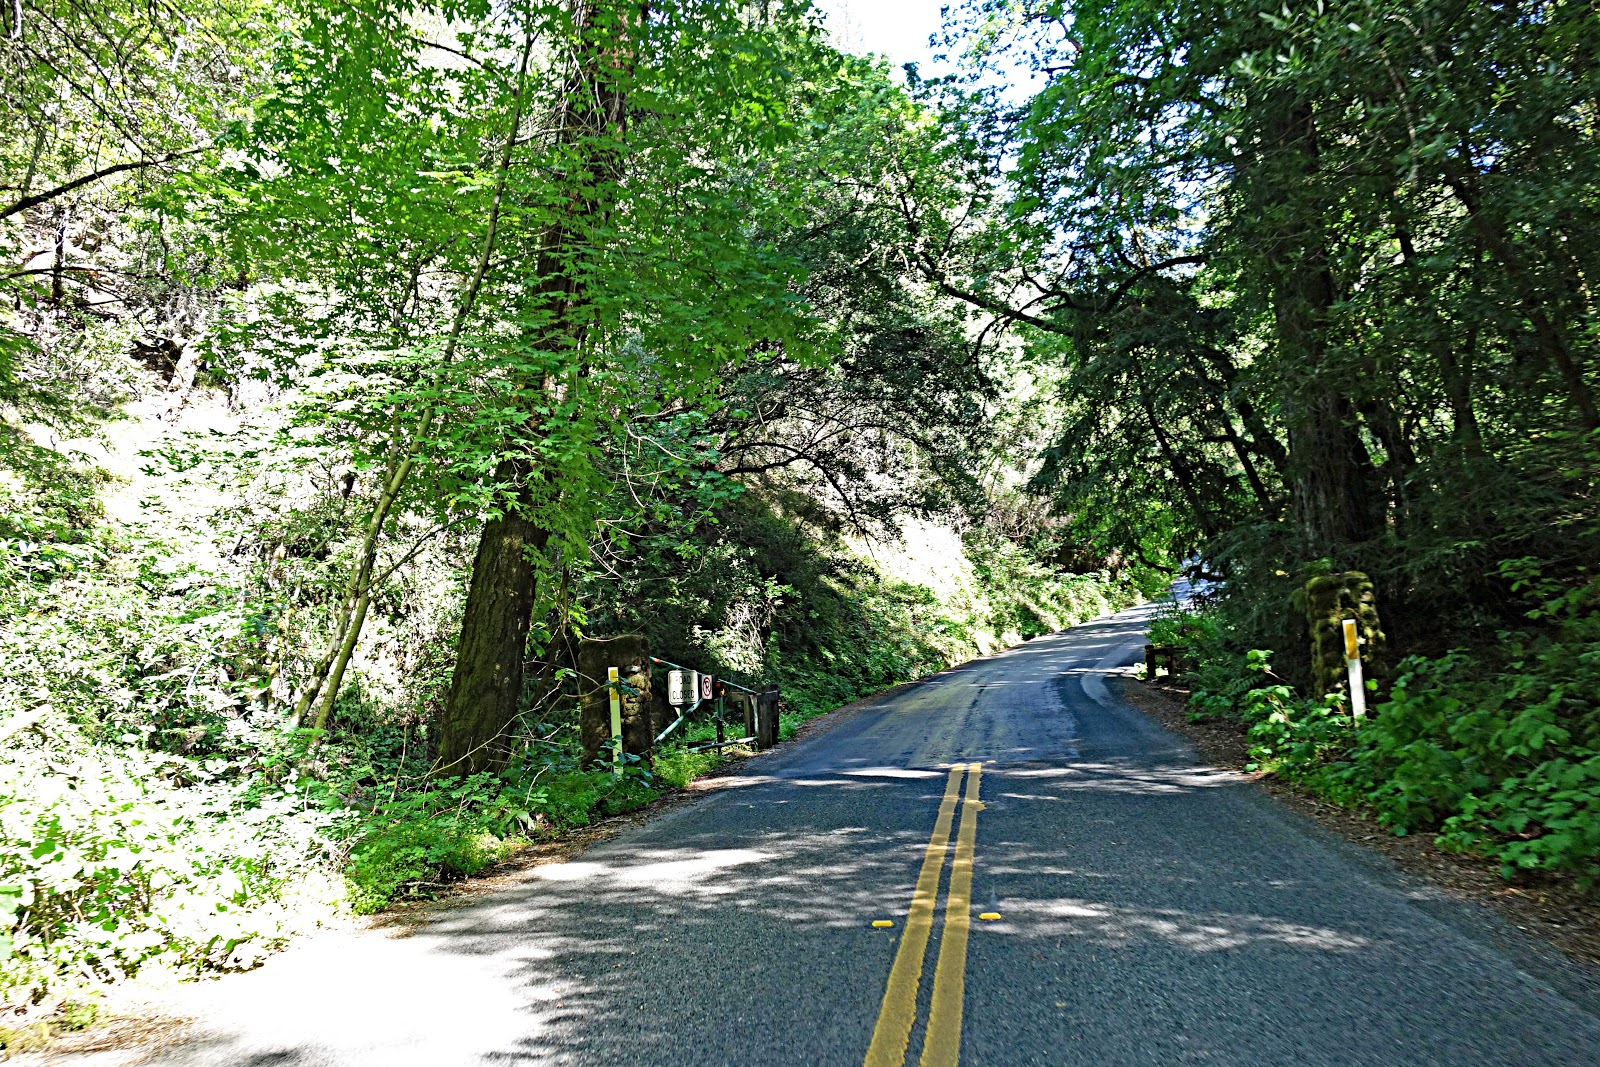 Bike climb to Bald Mountain - road and forest - start of climb